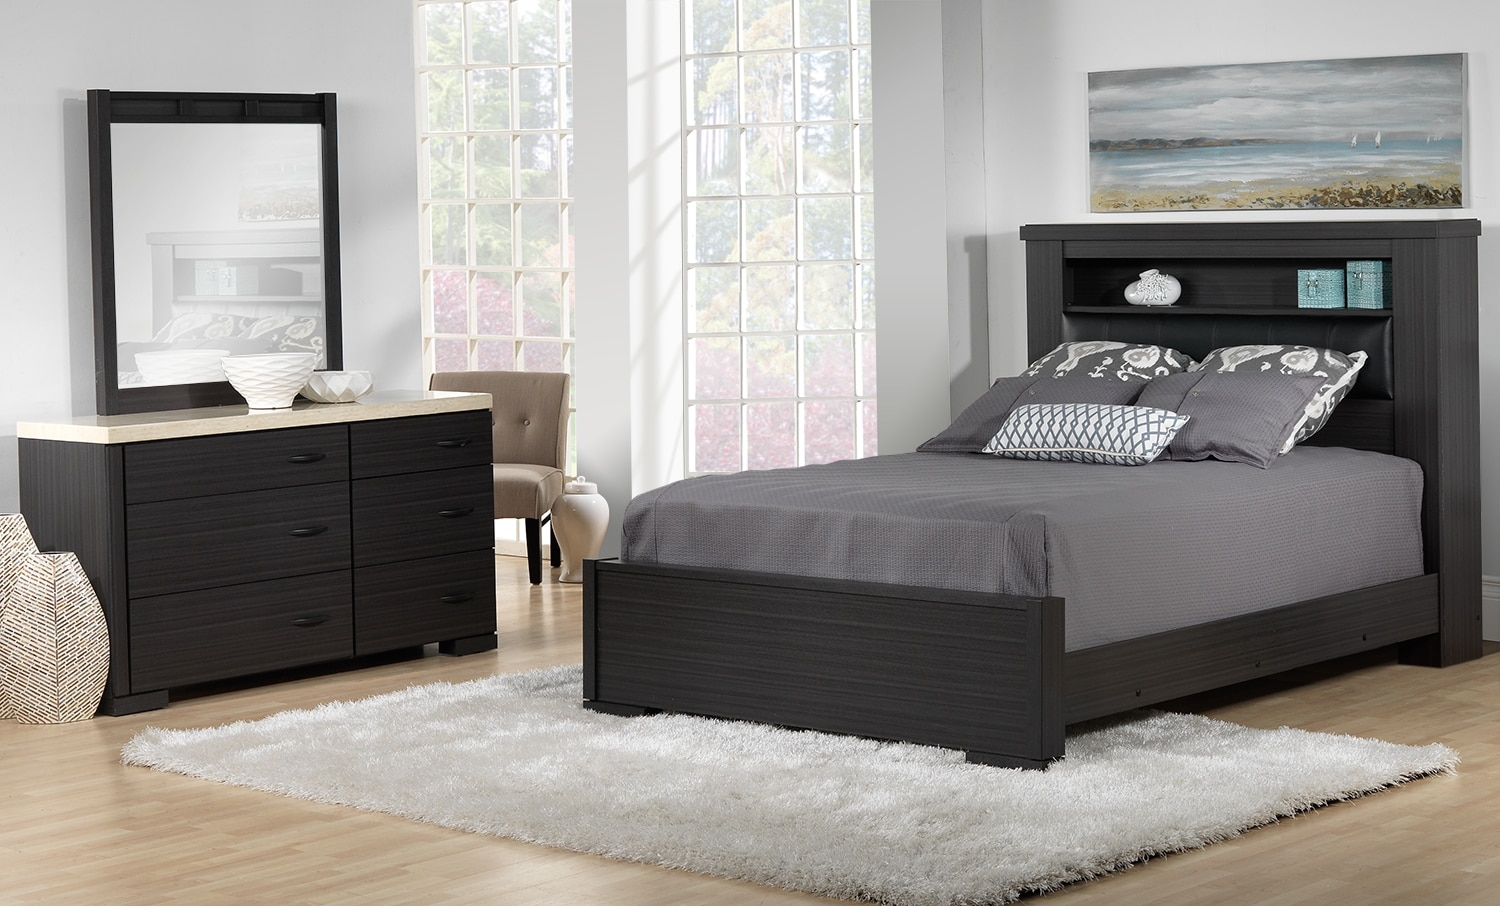 Santee 5-Piece Queen Bedroom Set - Charcoal & White